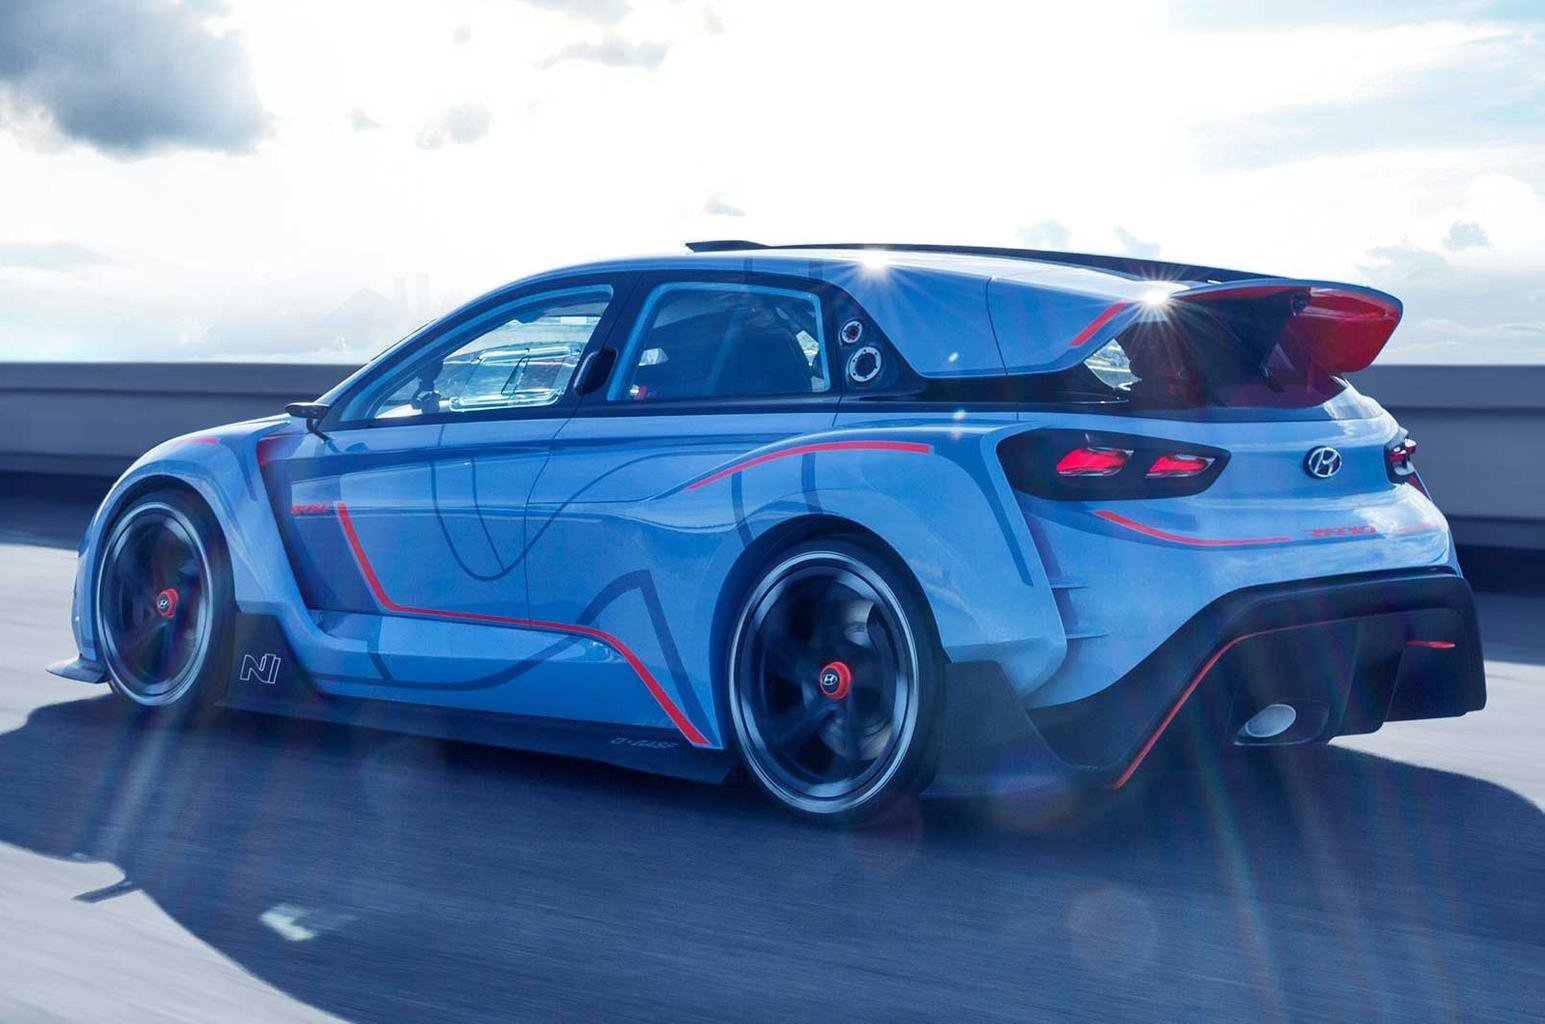 Hyundai previews new hot hatch with RN30 concept car